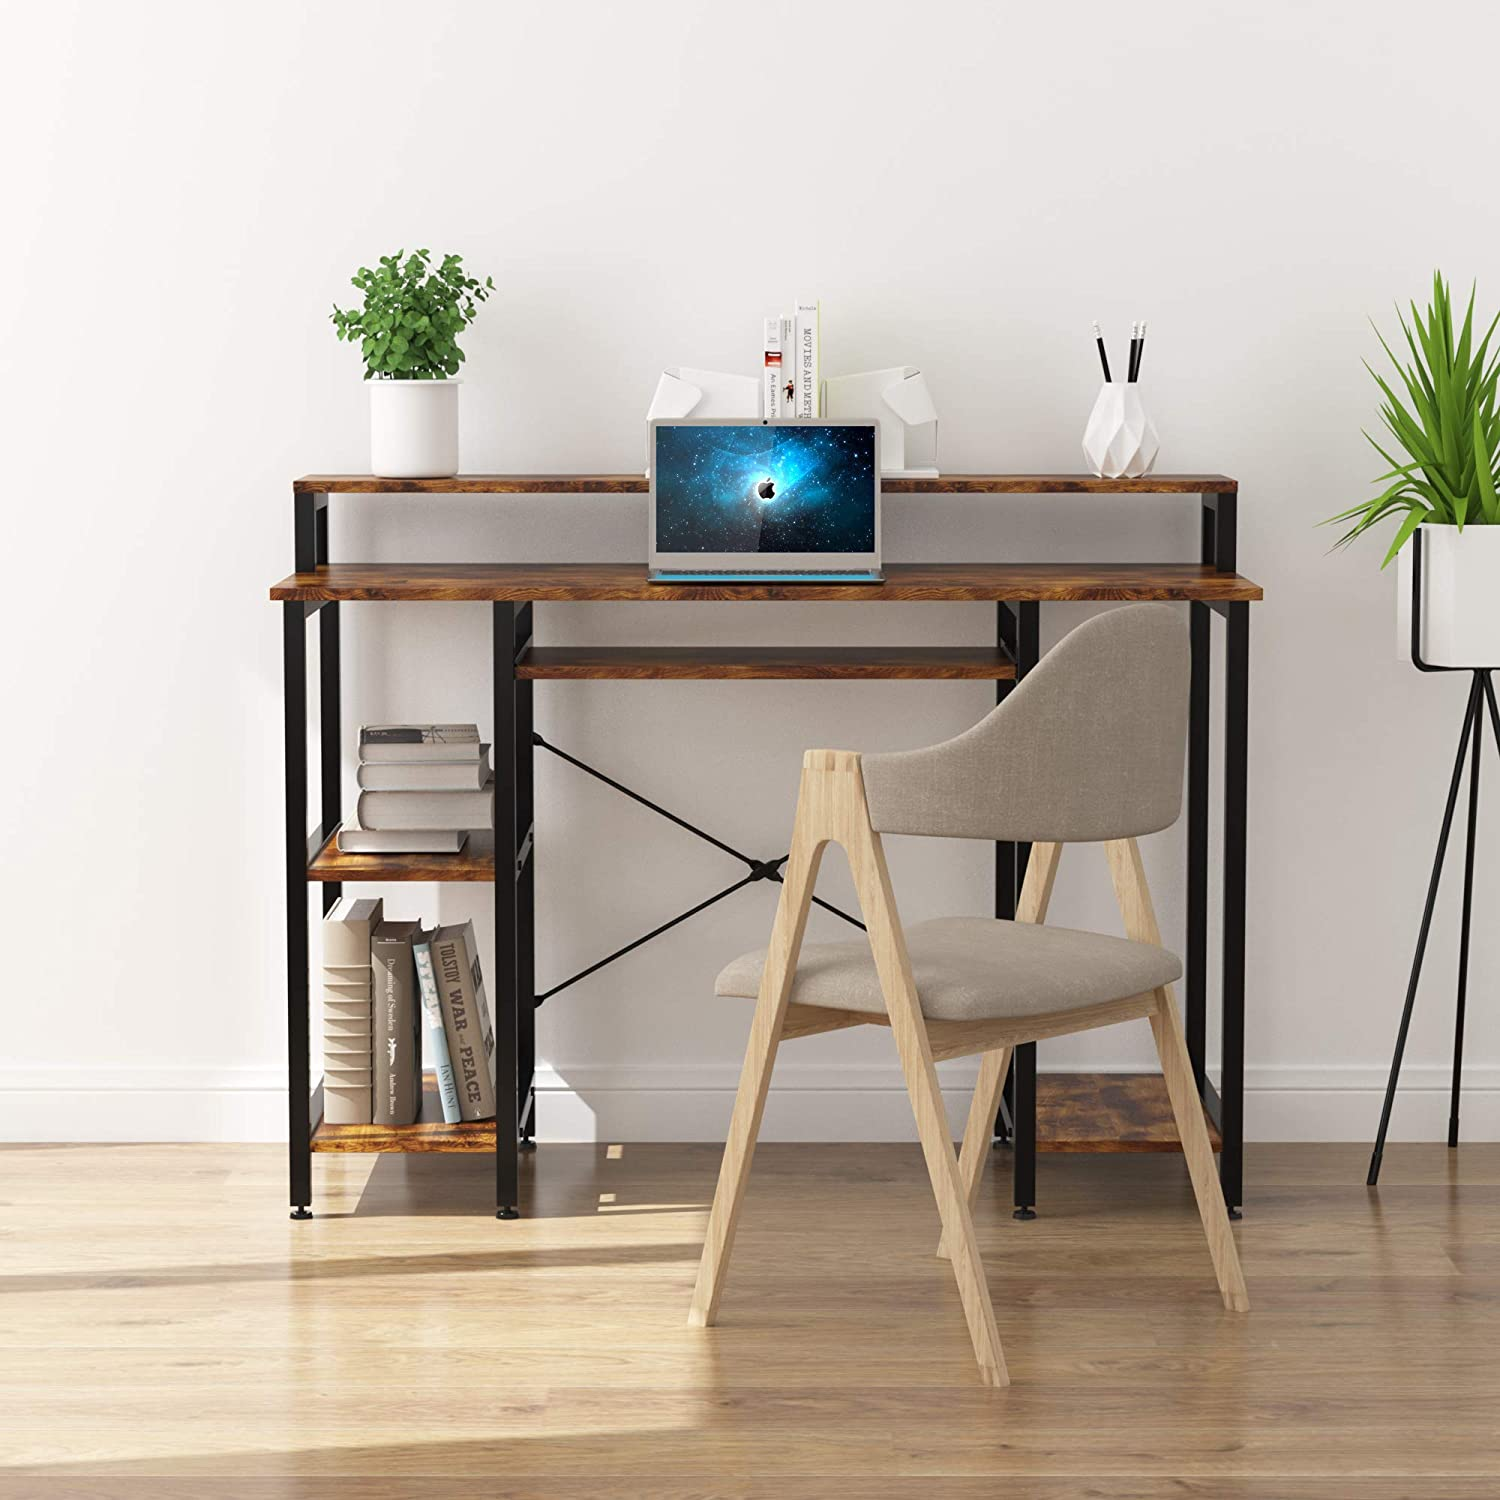 oneinmil Computer Desk with Hutch, Home Office Table with Keyboard Tray, Rustic Brown Compact Writing Desk with Open Shelves